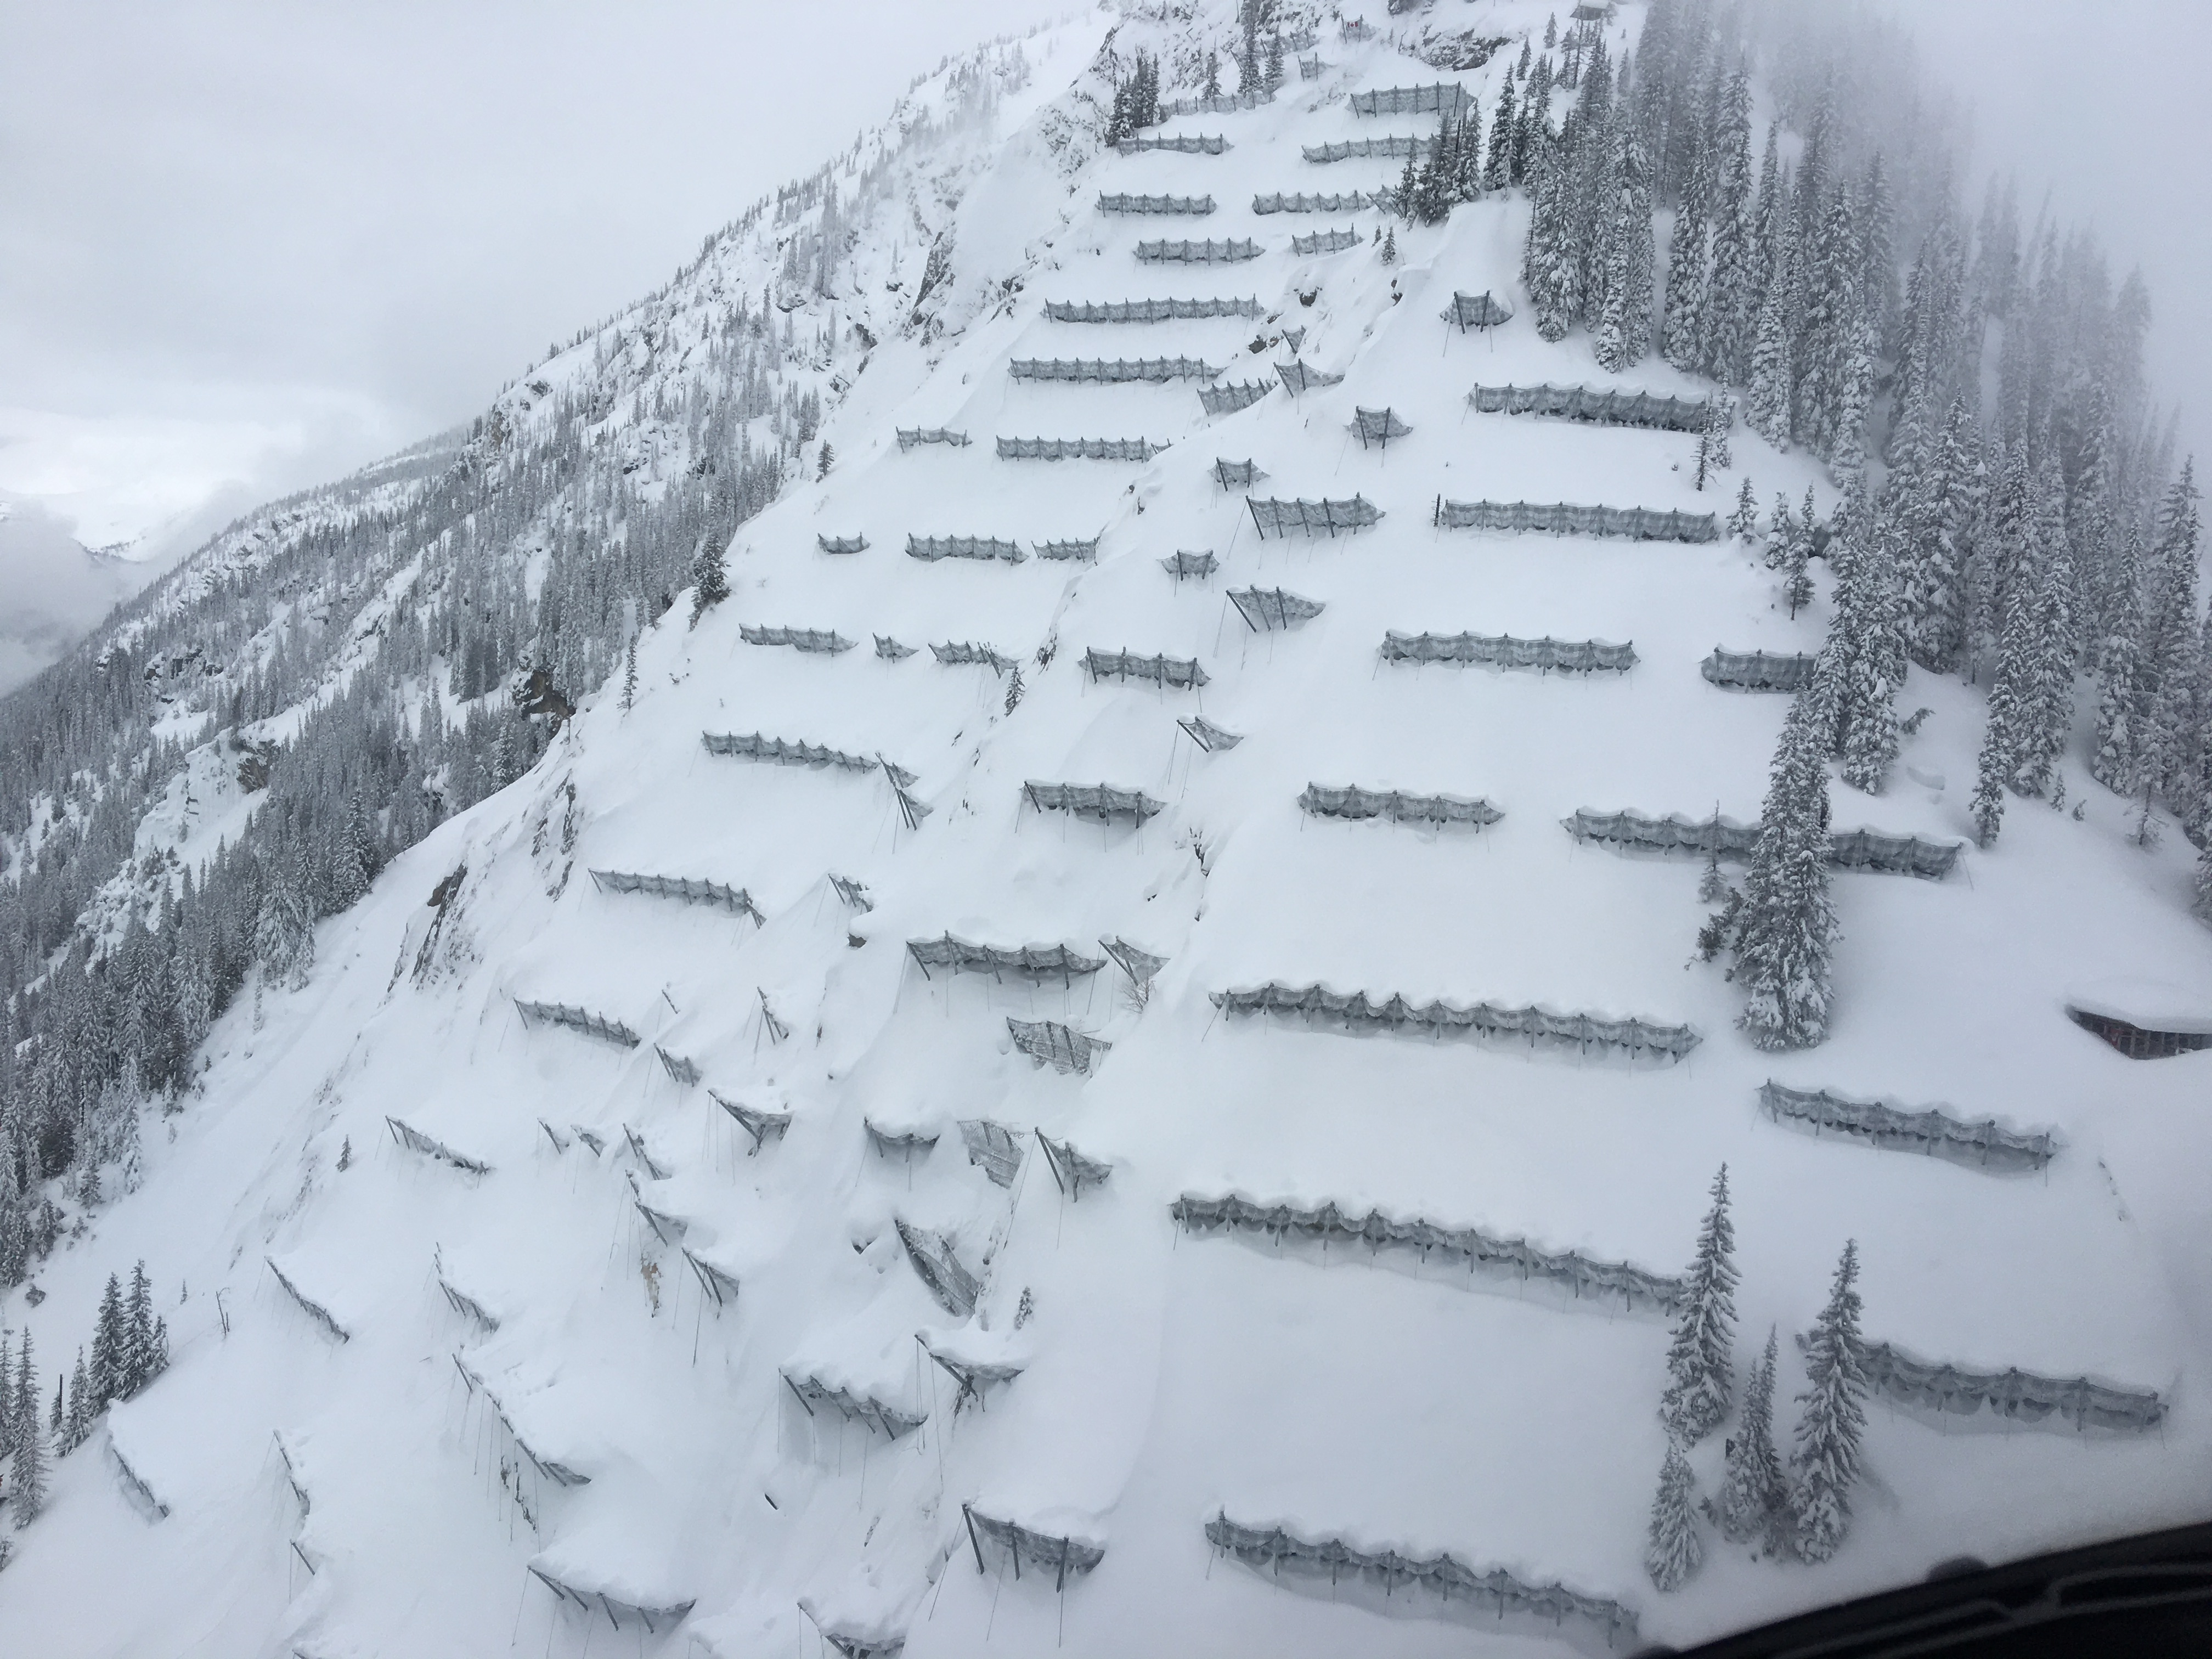 Trans-Canada Highway Avalanche Mitigation Project for Glacier National Park snow nets support structure